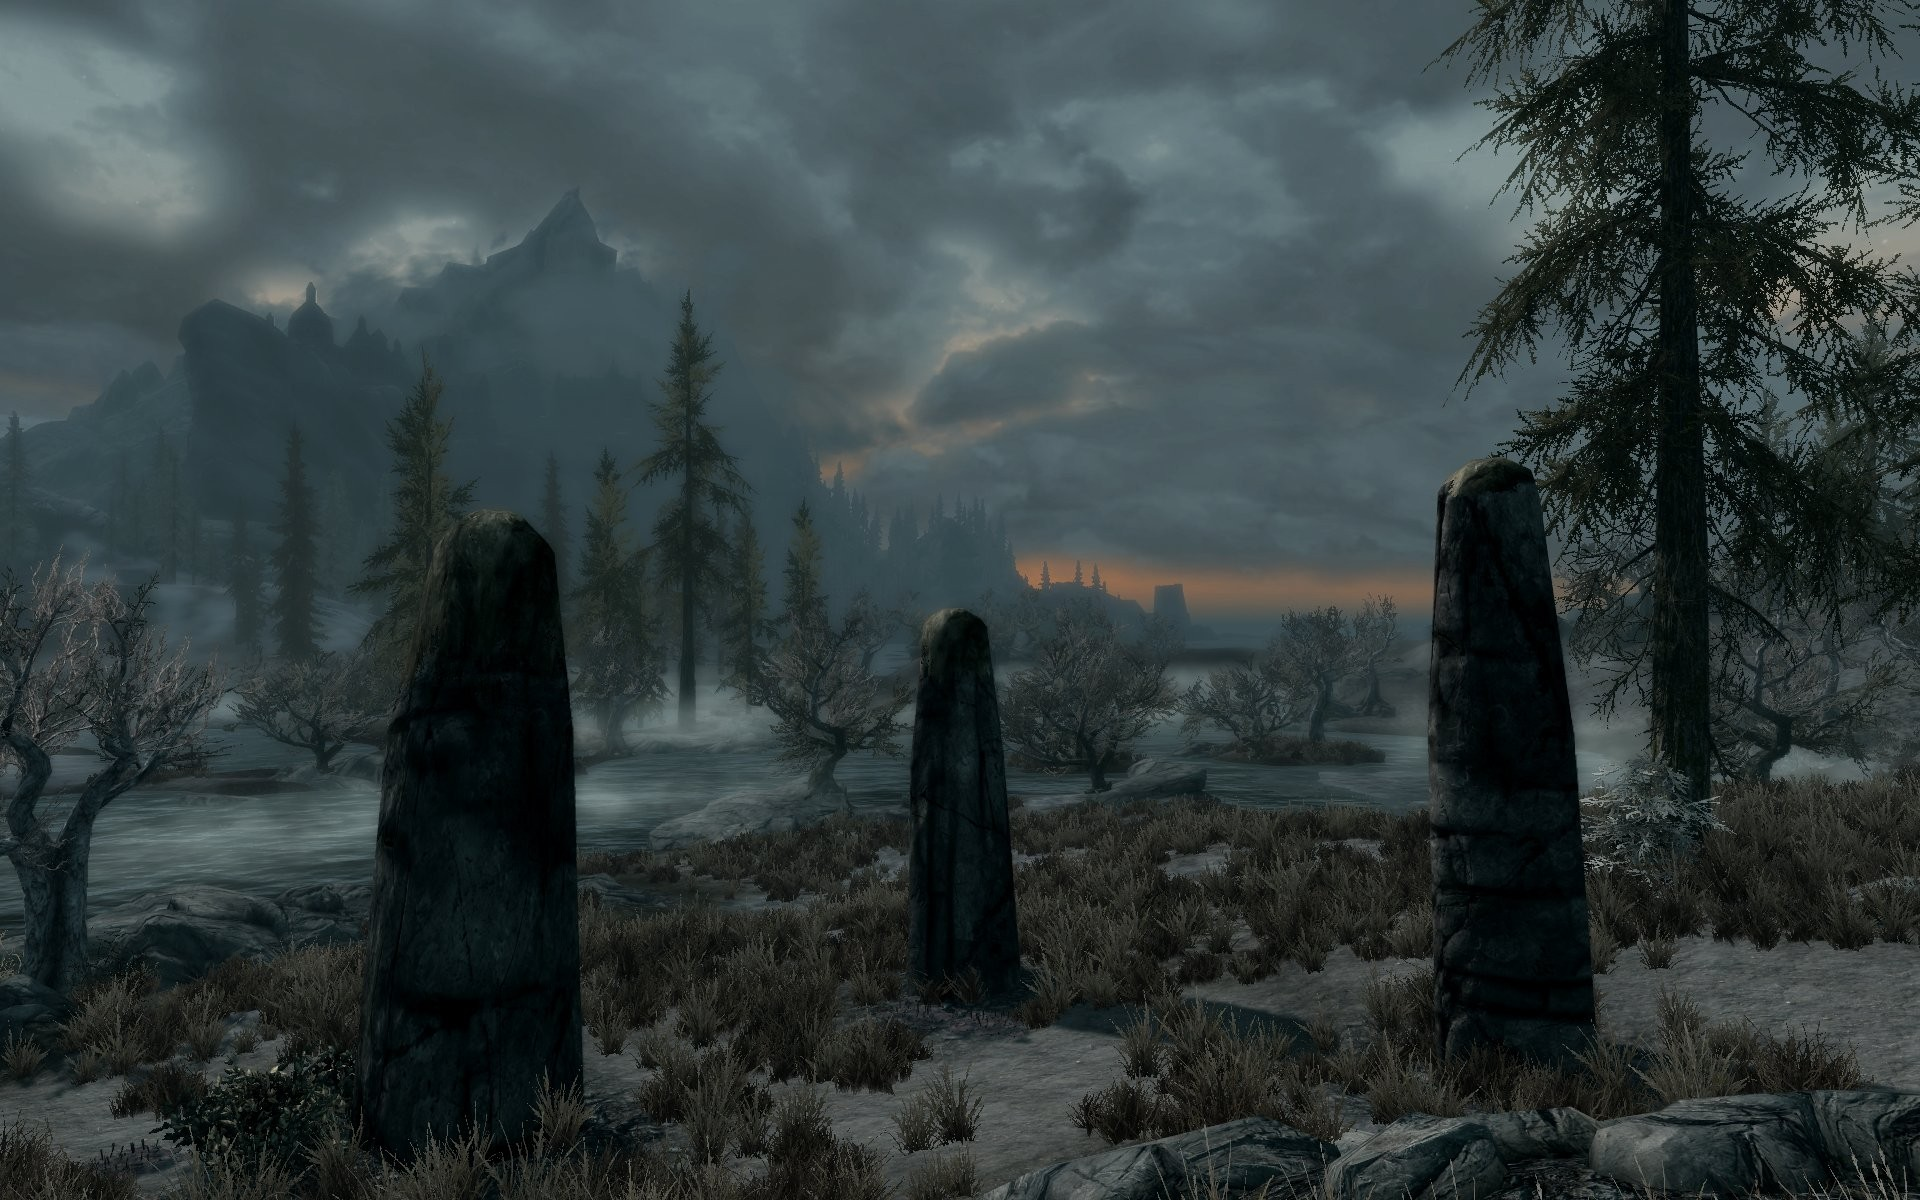 Skyrim - dusk upon the wetlands near Solitude.